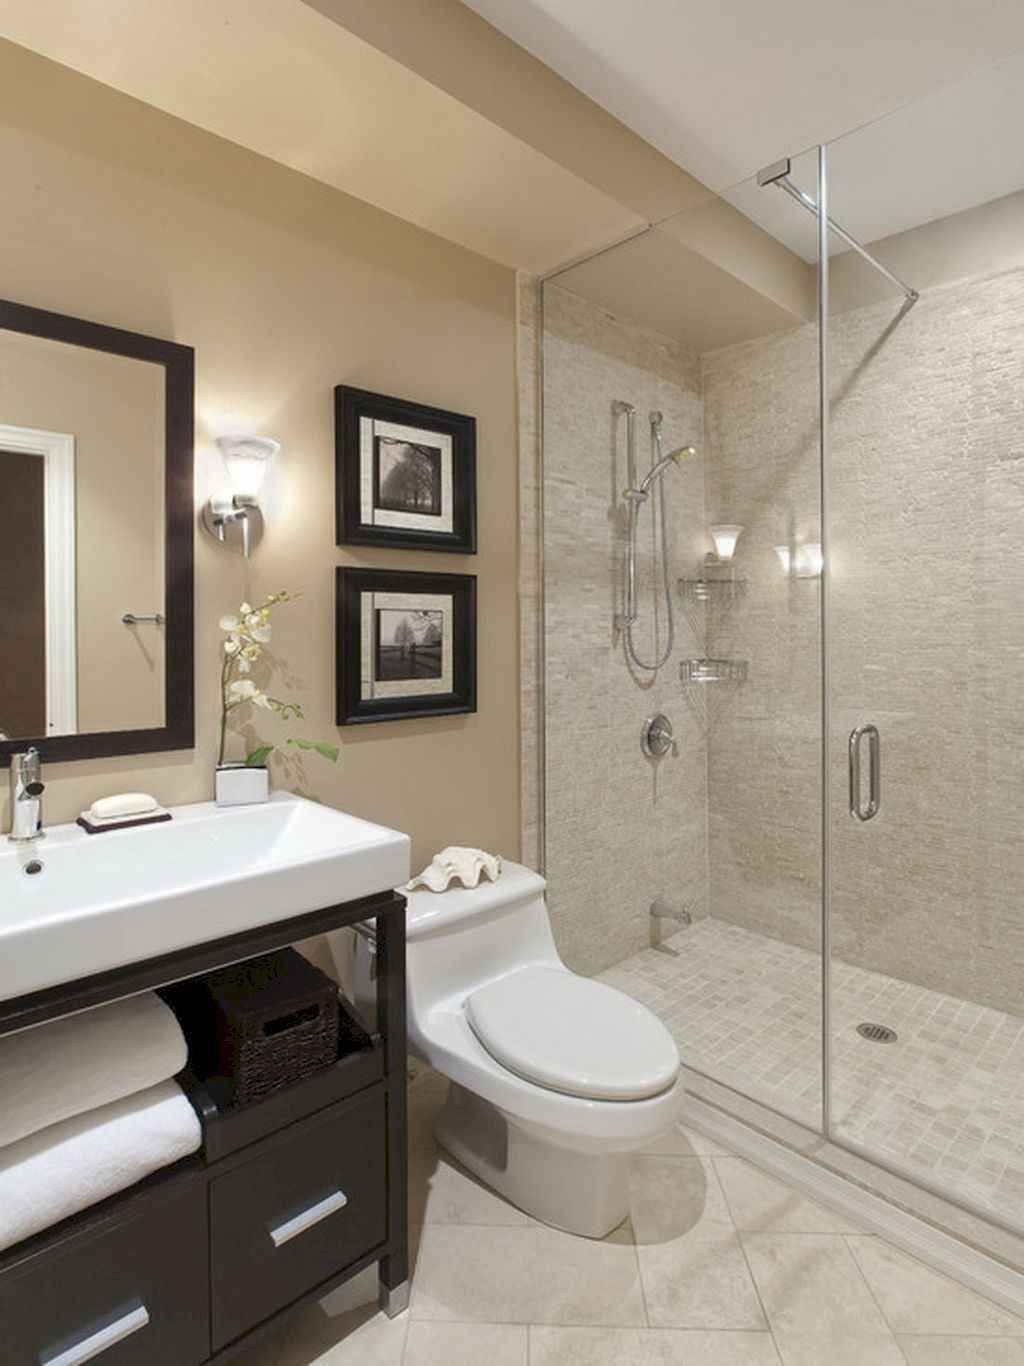 80 stunning tile shower designs ideas for bathroom remodel on stunning small bathroom design ideas id=42782